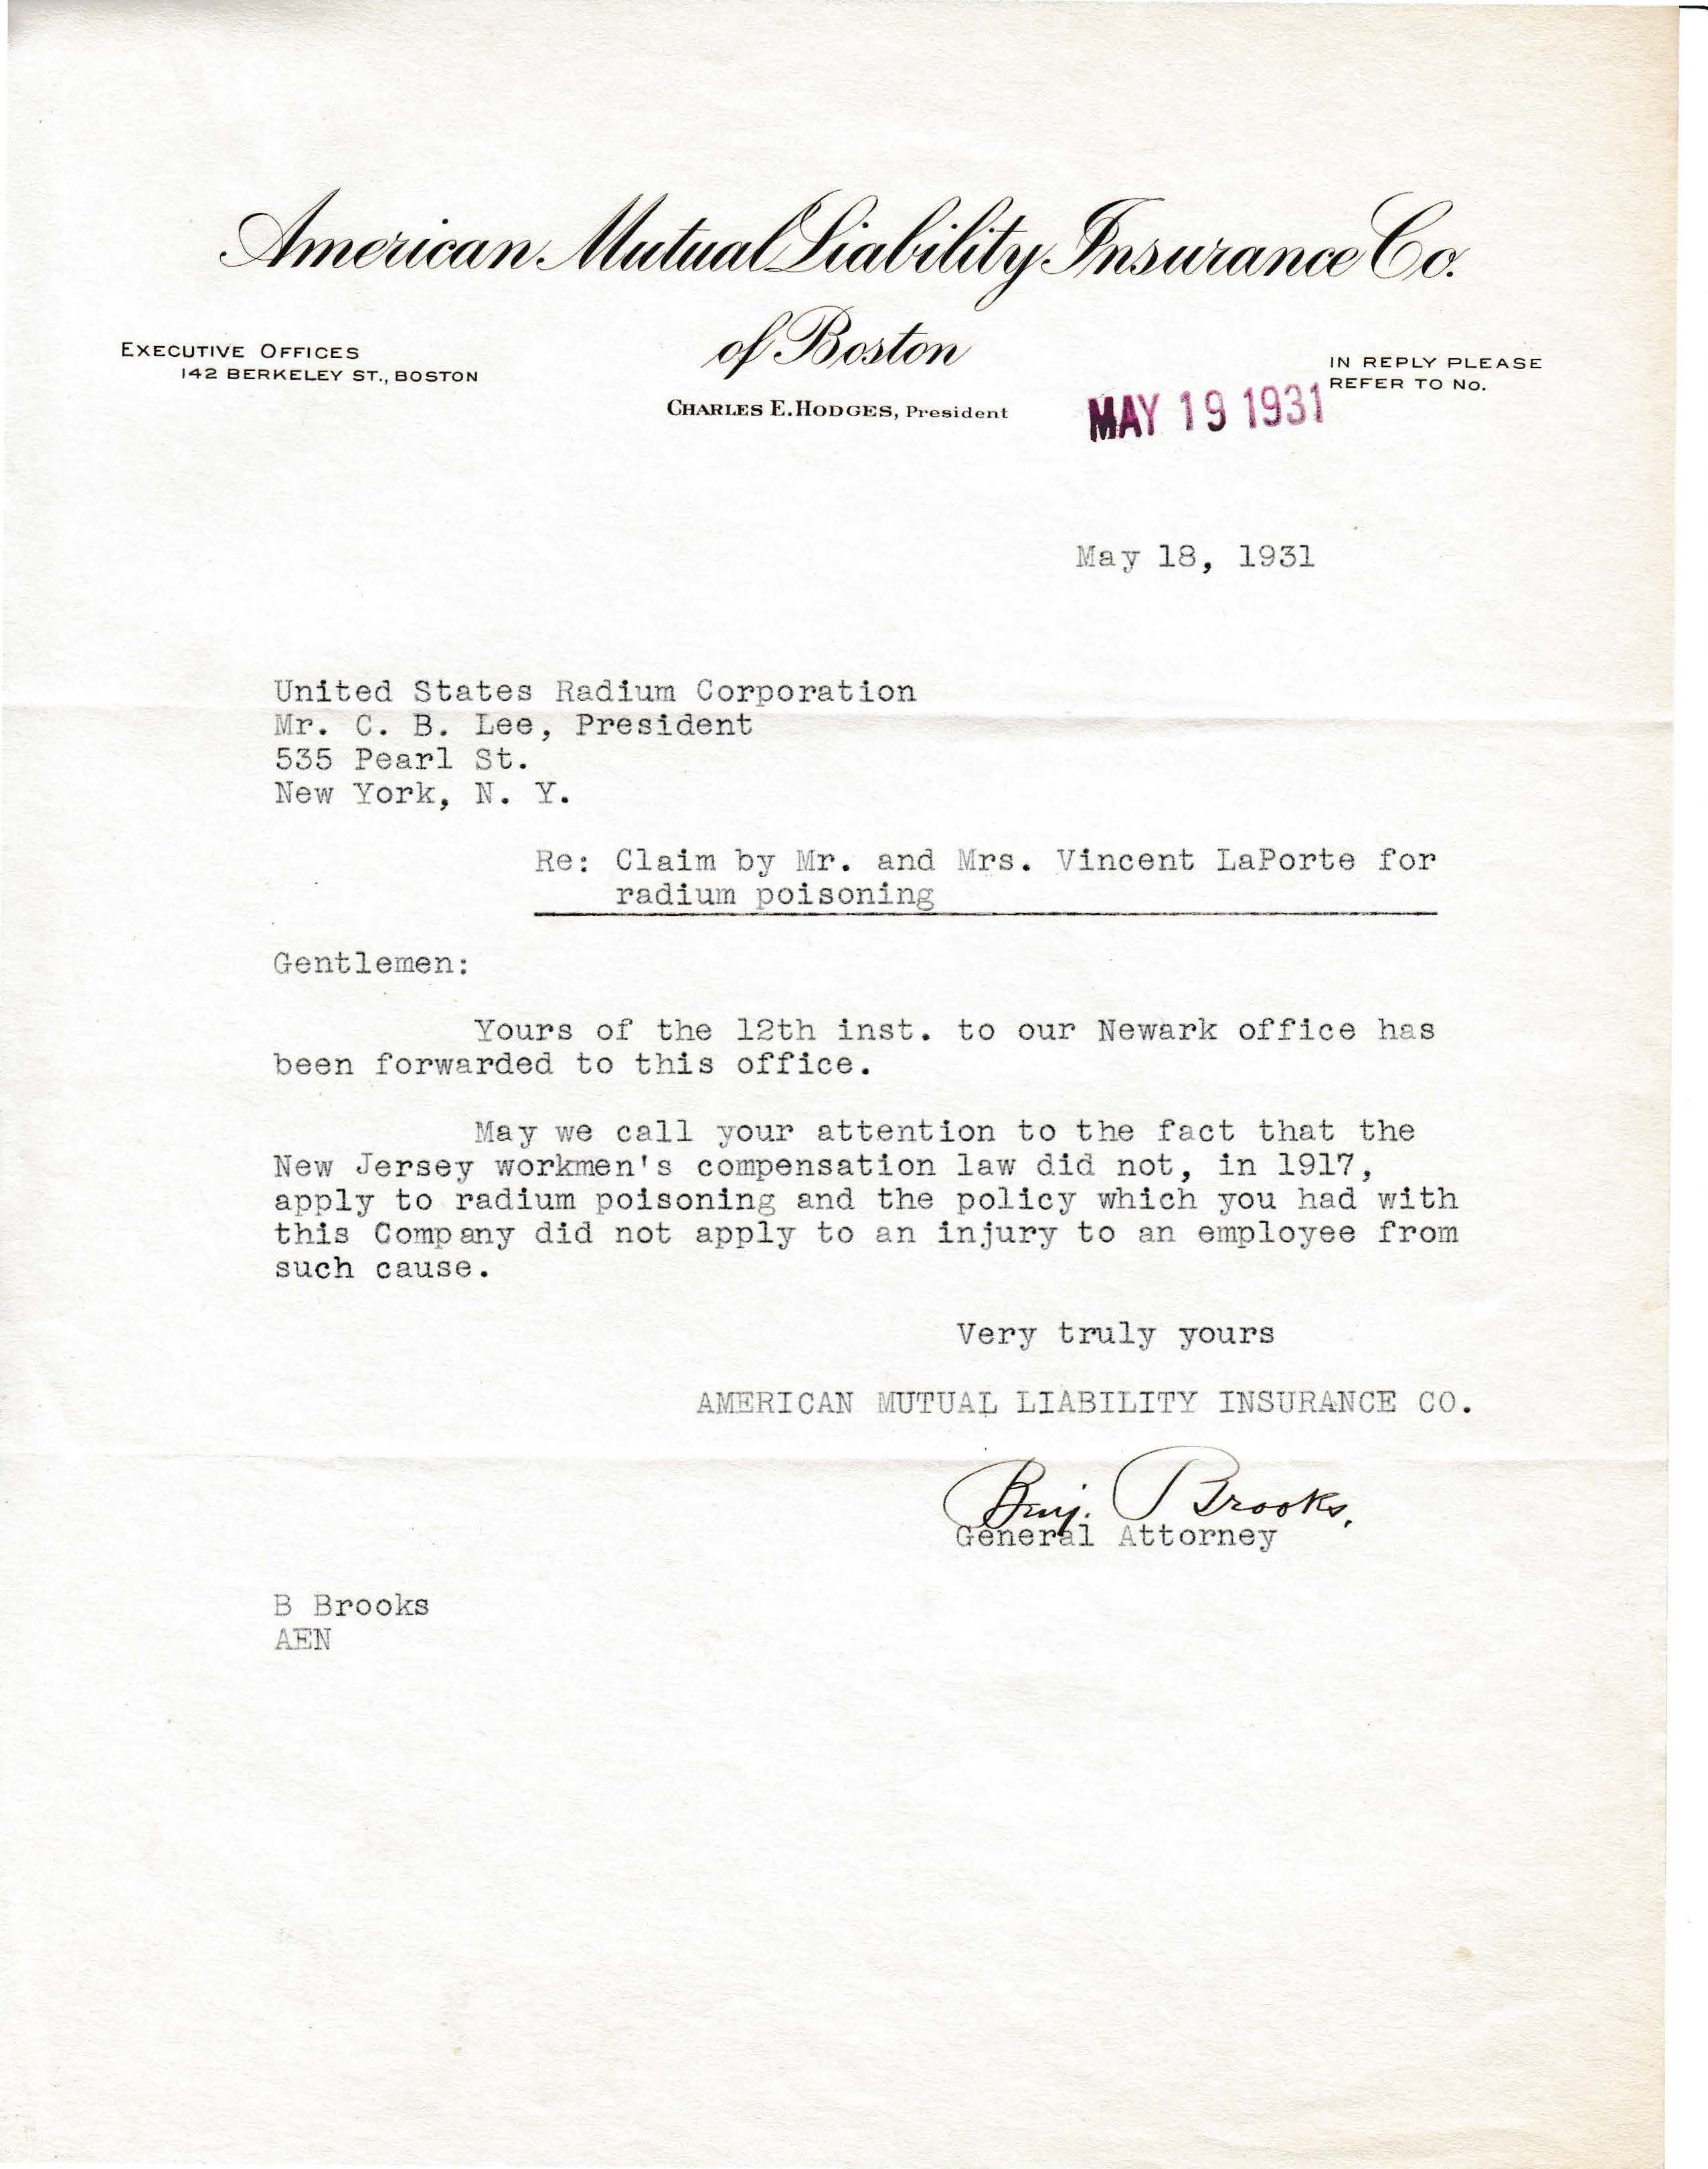 Letters Received to C.B. Lee, May 18, 1931